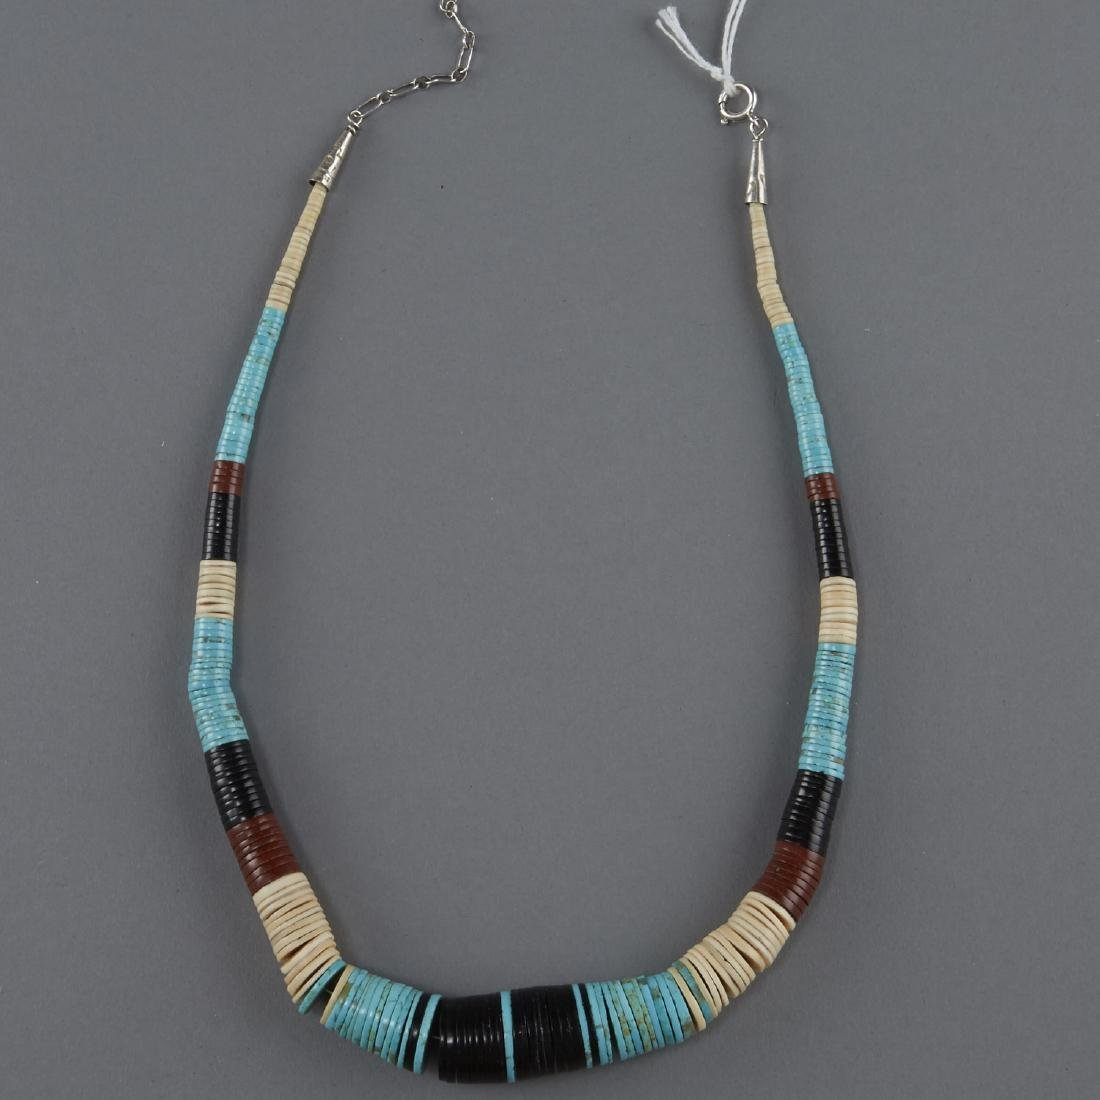 3 Necklaces Squash Blossom, Silver, Turquoise - 3